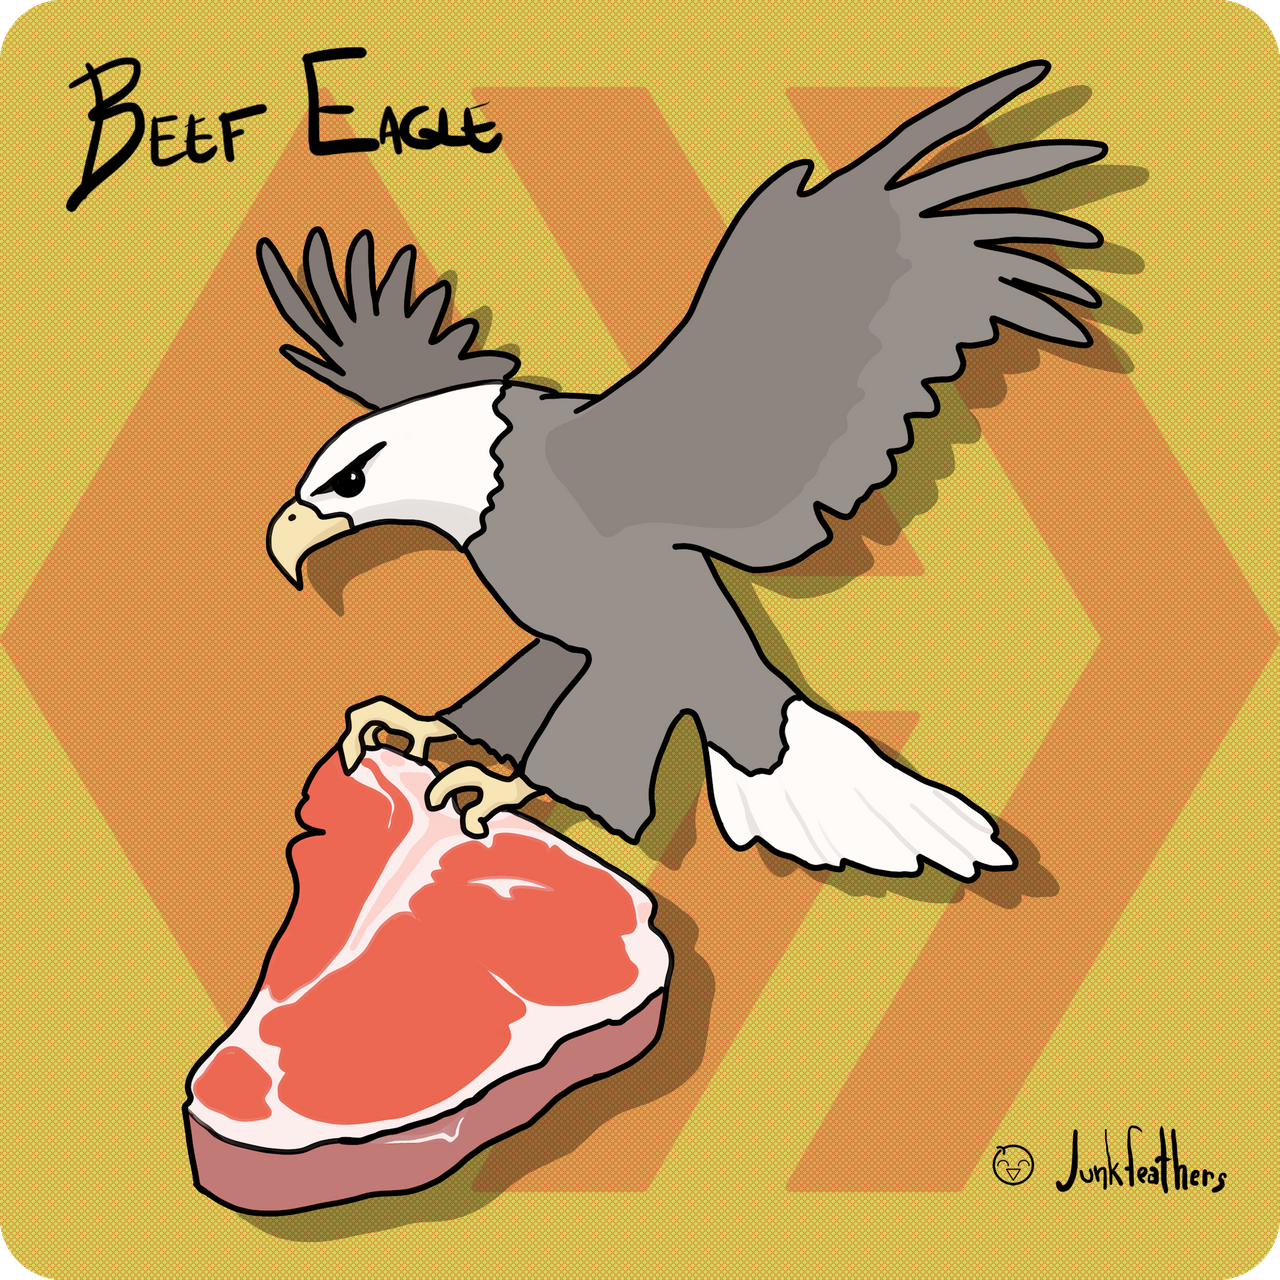 Hive Beef Eagle.png